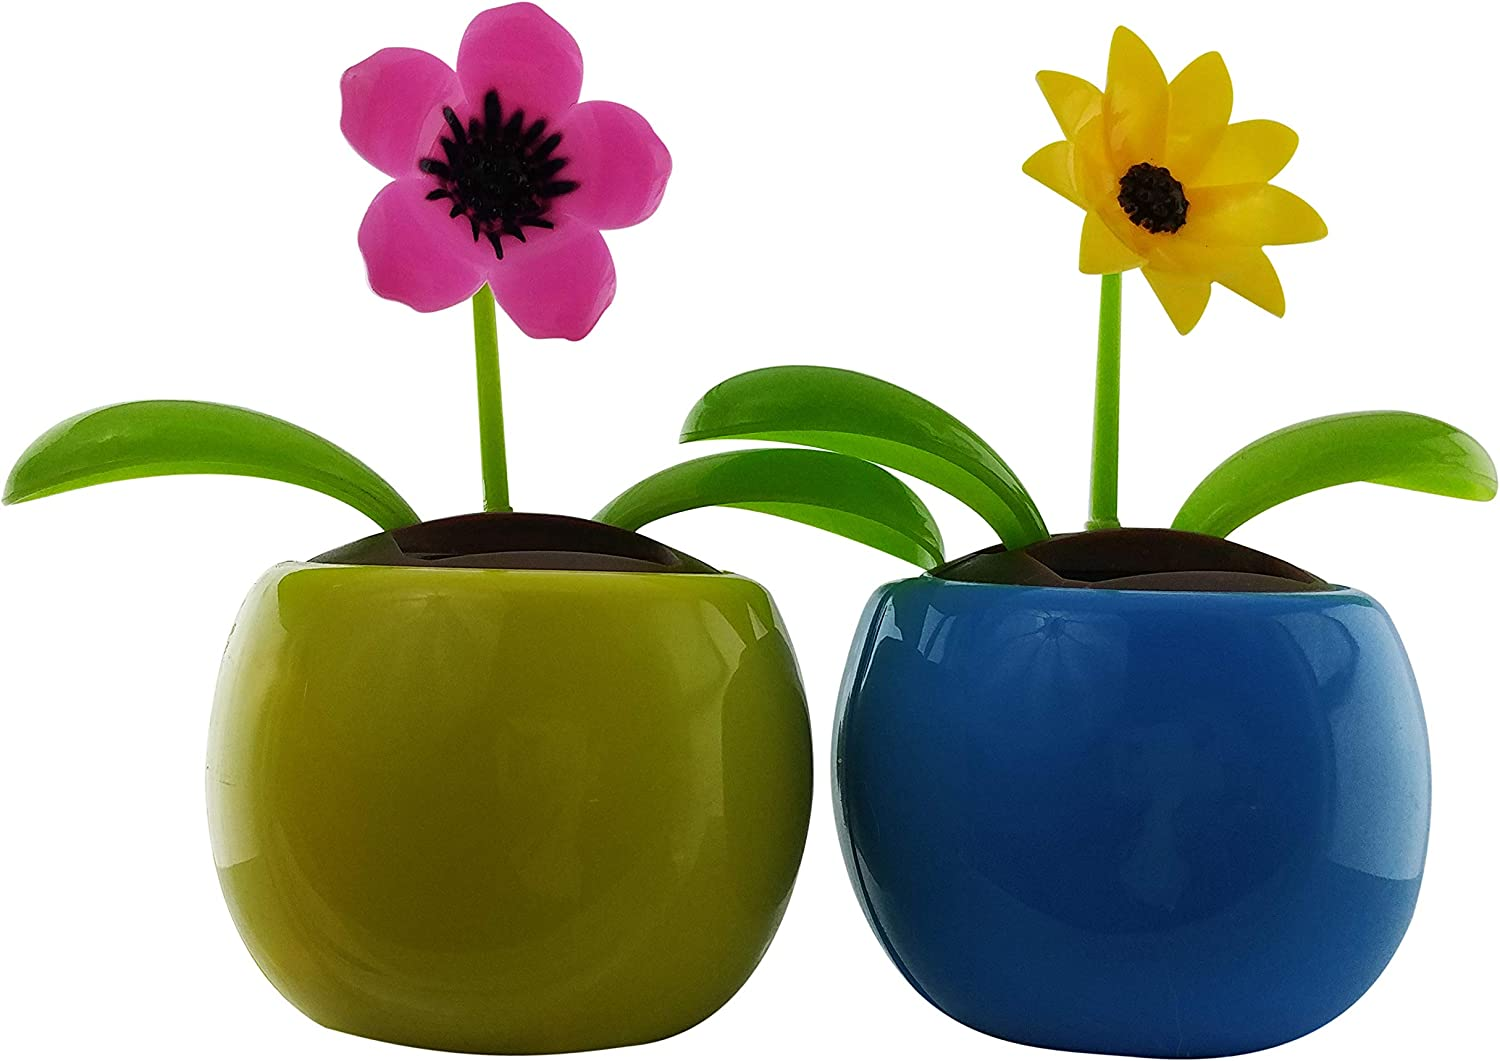 Eco-friendly Solar Powered Flower Dancing Toys | Pink Petunia and Yellow Black-Eyed Susan Solar Flowers in Decorative Pots | Office Desk, Car Décor, and Sunflowers in colorful pots | (2 Pack)